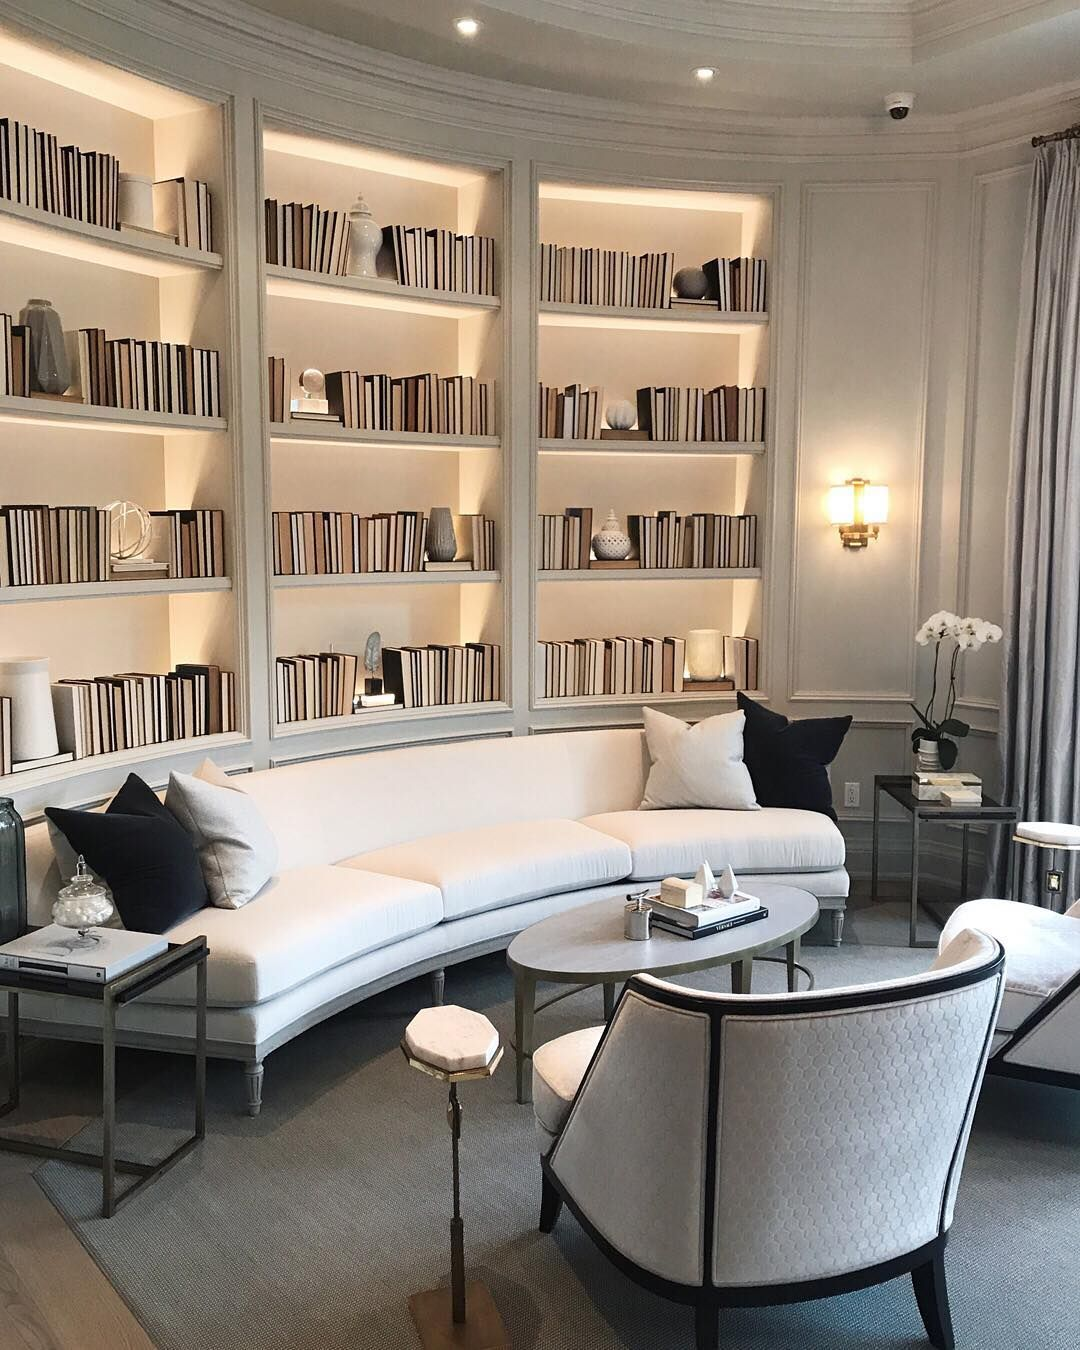 Images Of Living Room Interior Design Inspiration 25 Great Tips For An Extra Stylish And Cozy Living Room  Lounge Review